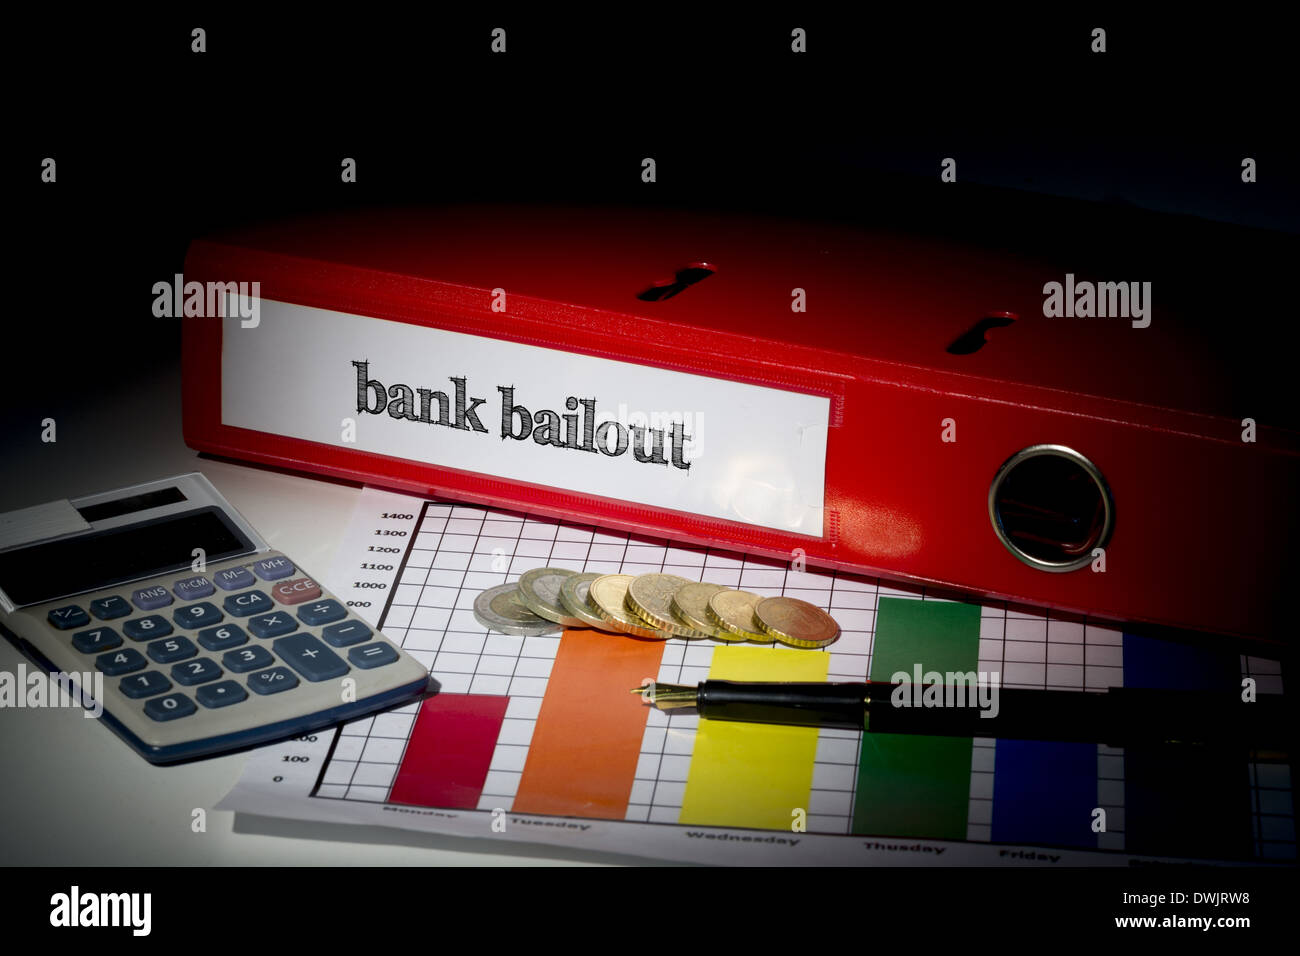 Bank bailout on red business binder - Stock Image